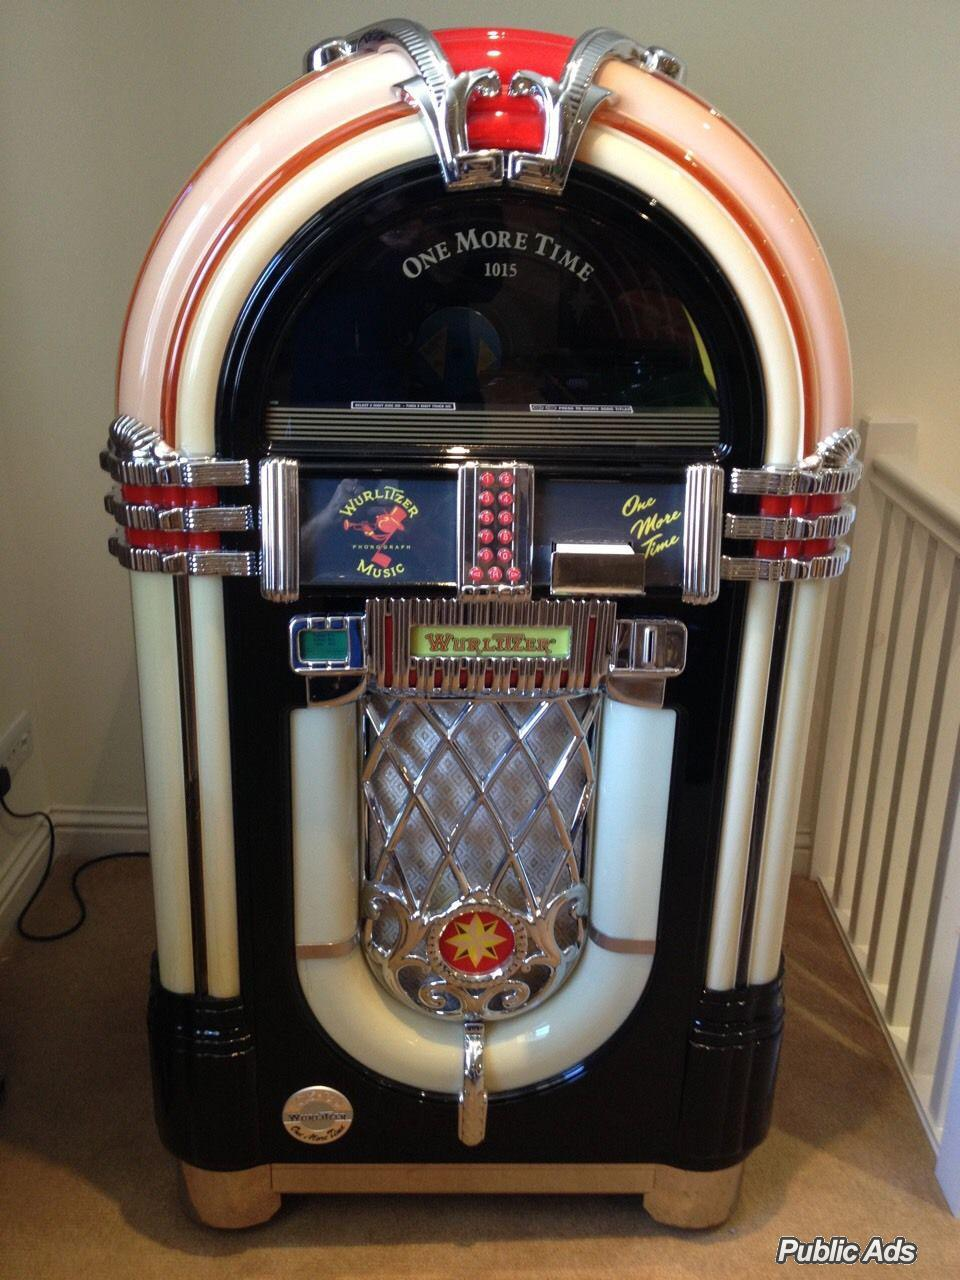 Wurlitzer Jukebox Omt Cd-100 | Boksburg | Public Ads Other